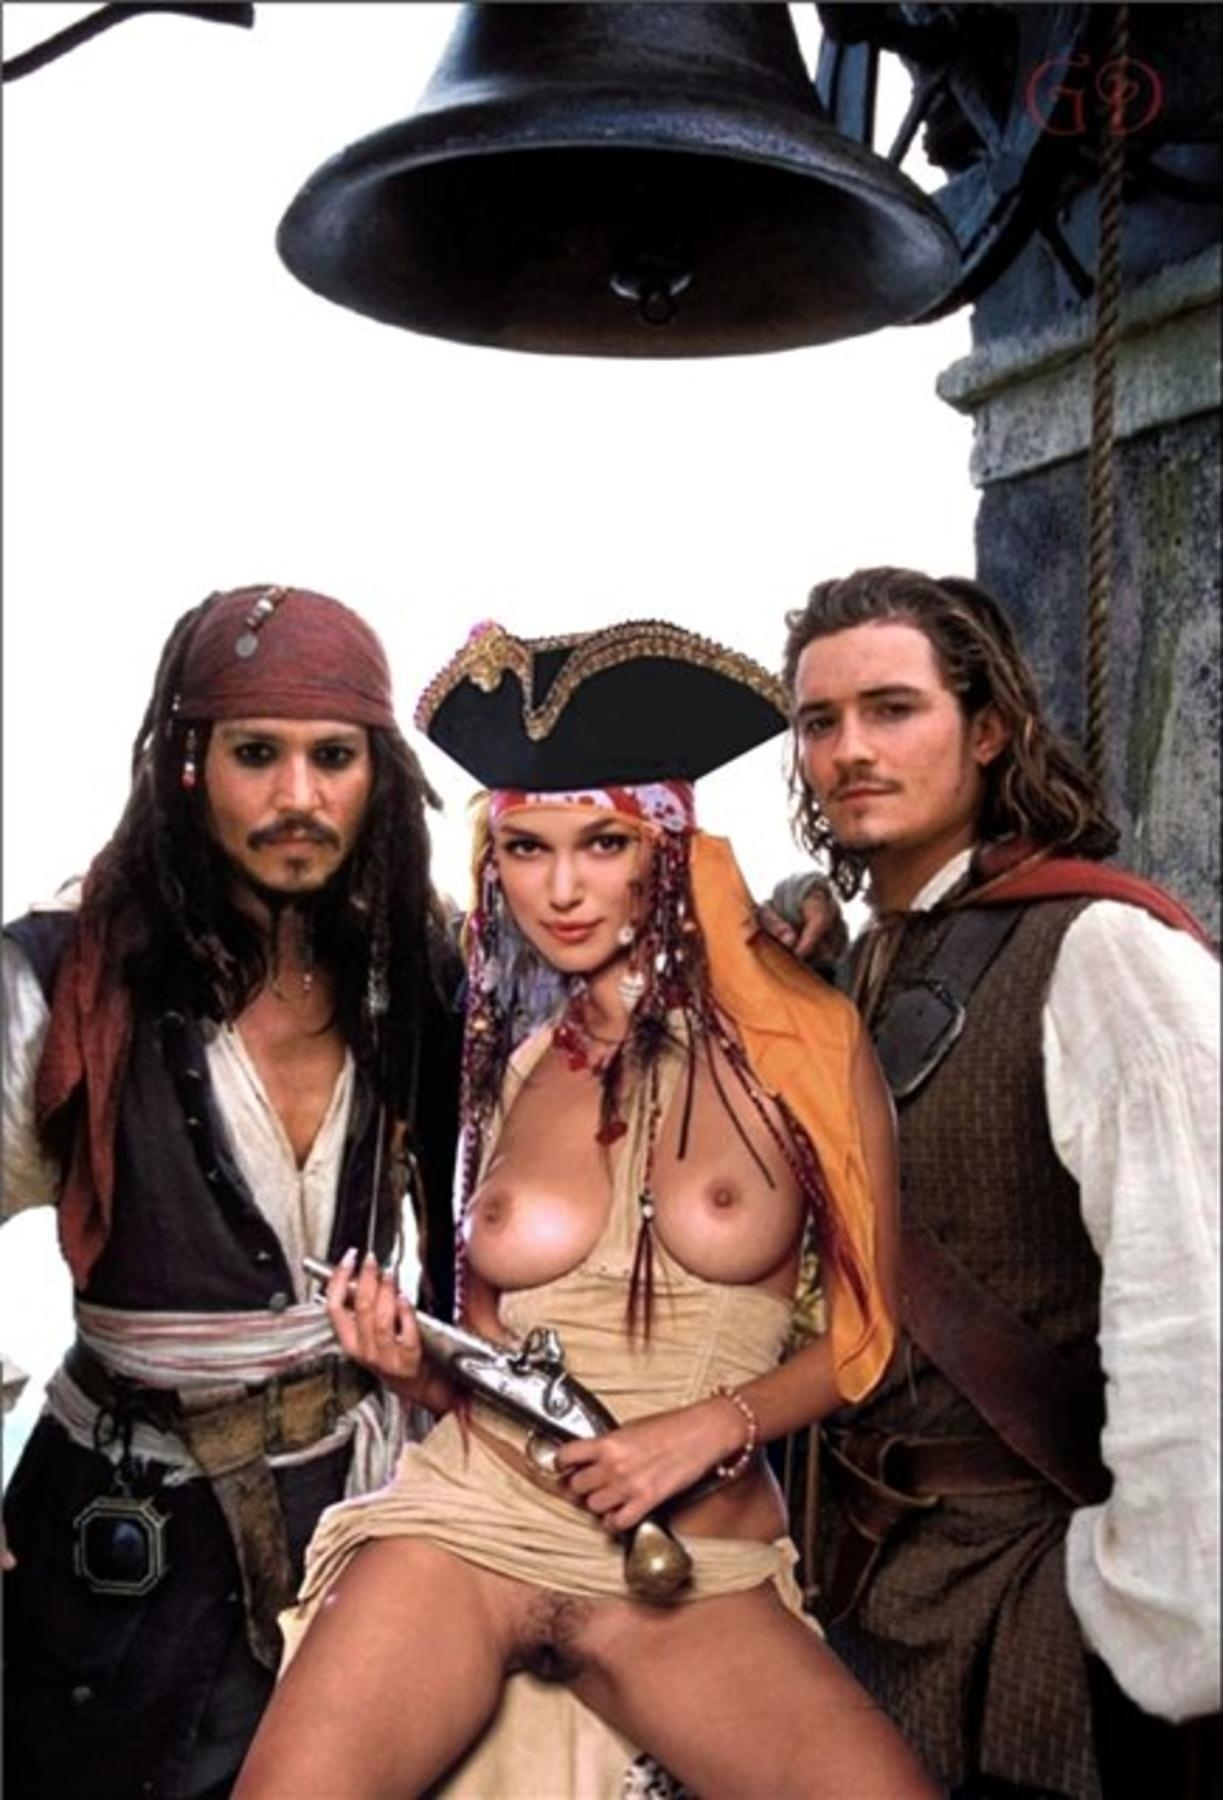 Pirates naked sex photos sexy picture